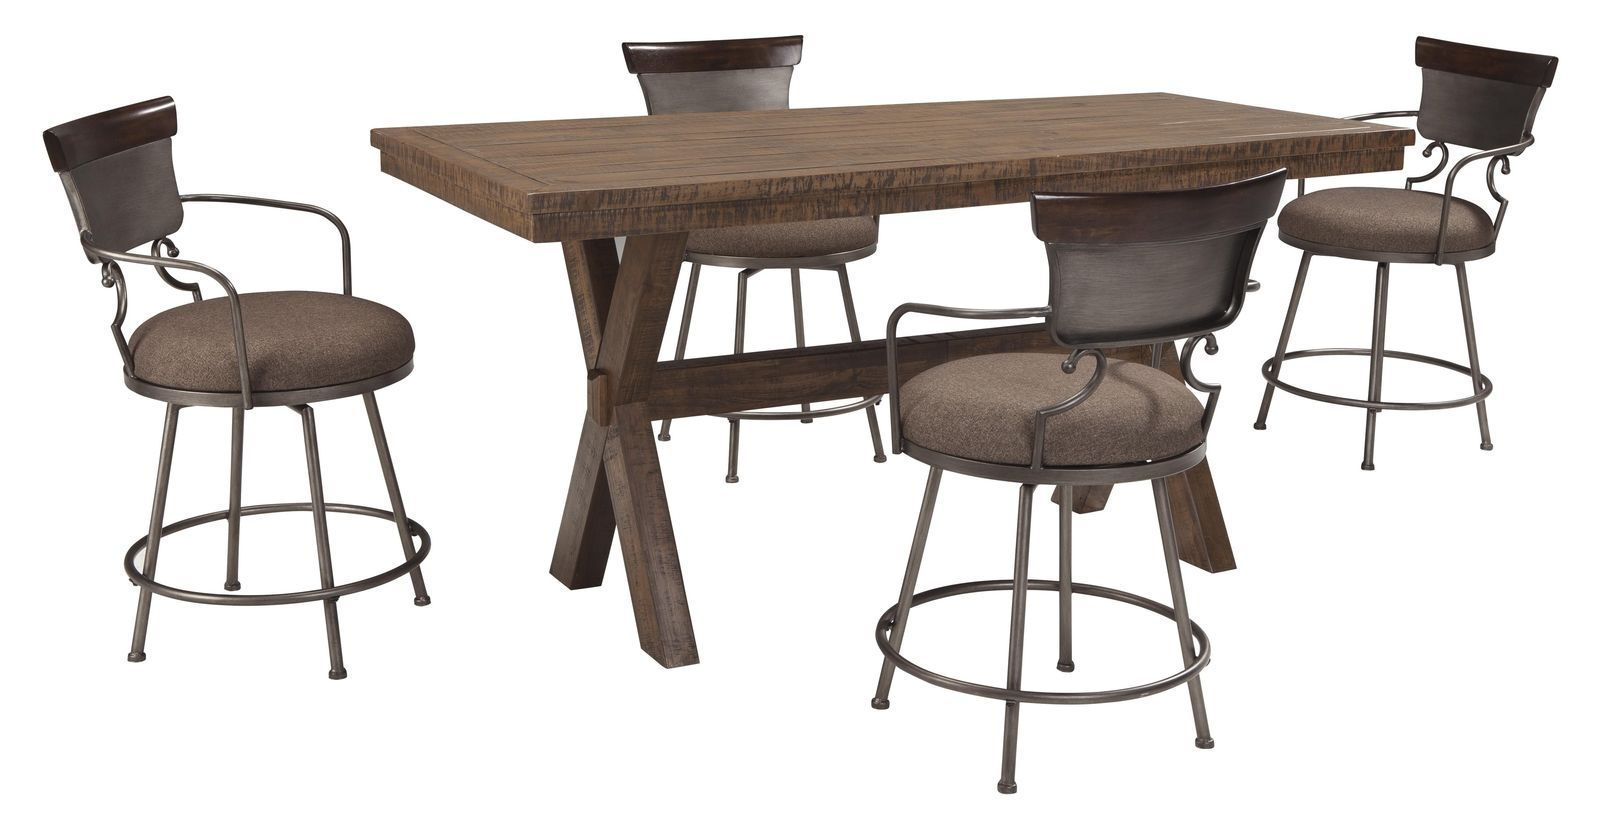 Signature design d608 624 walnord rustic brown 5 pcs for Brown dining table set